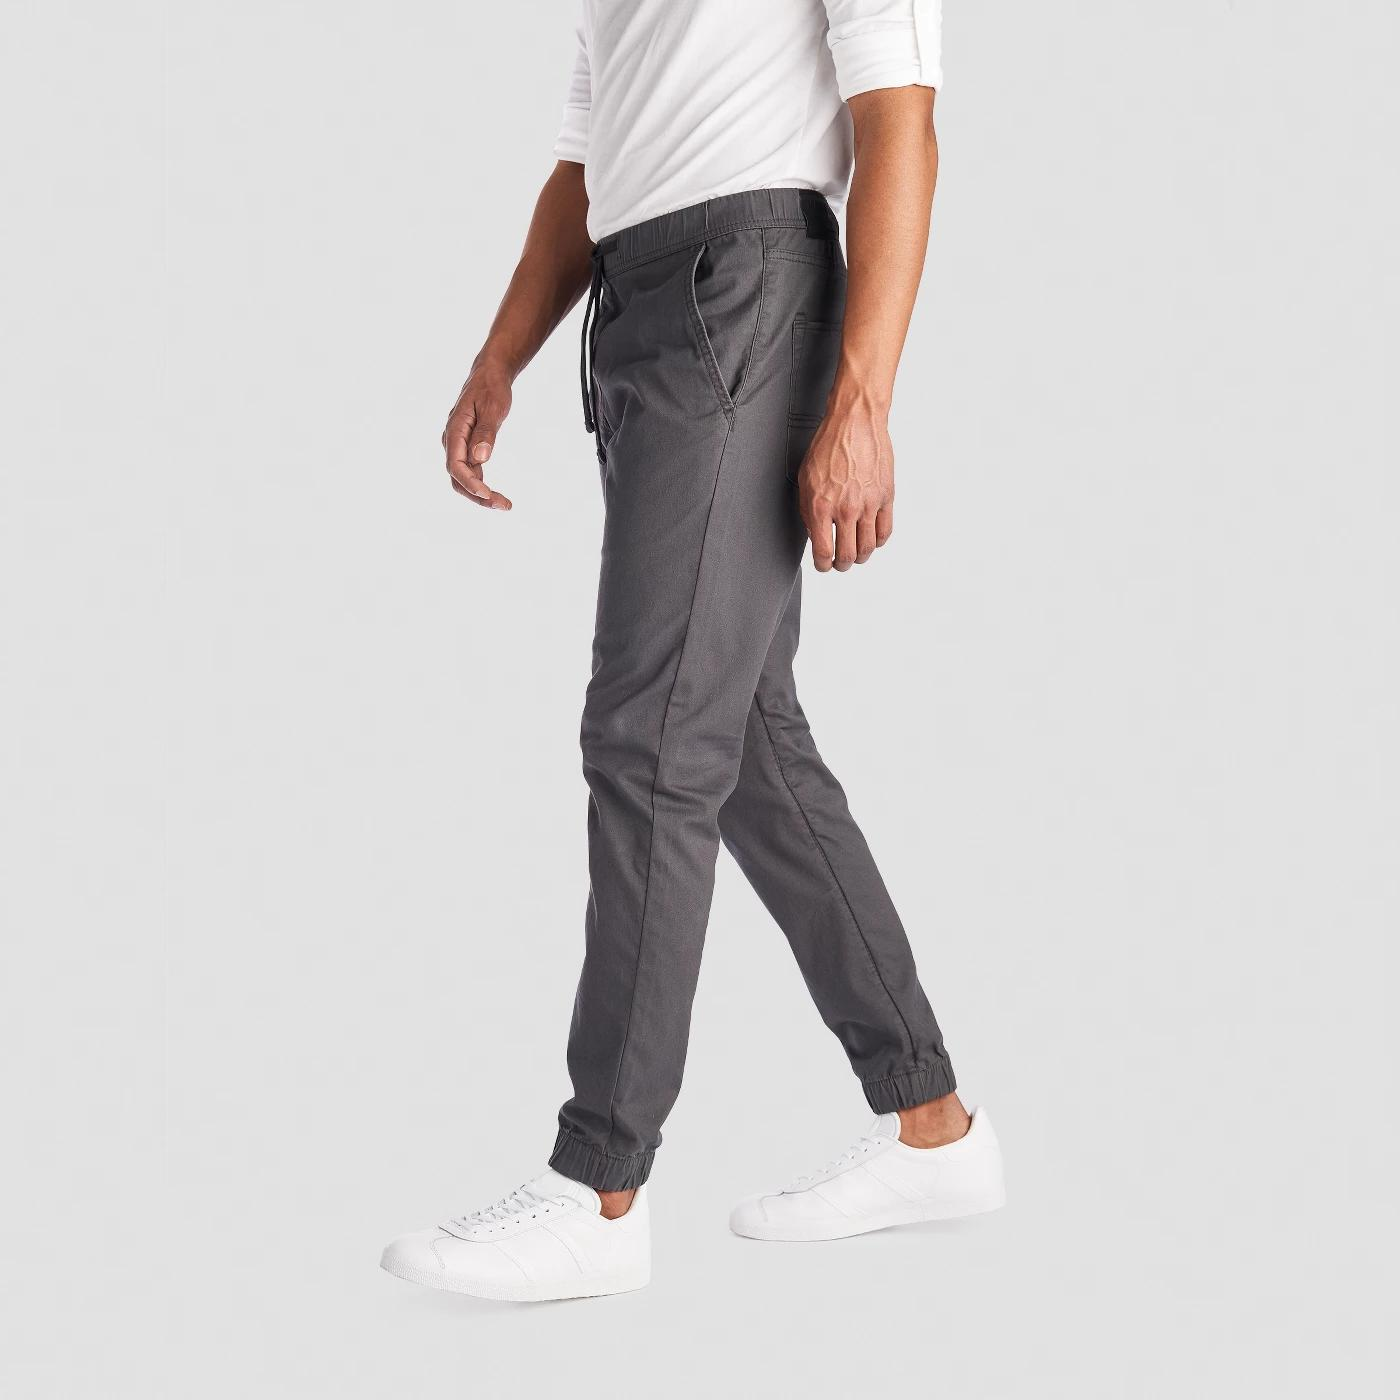 Levi's Men's Pants Grey Small SMALL